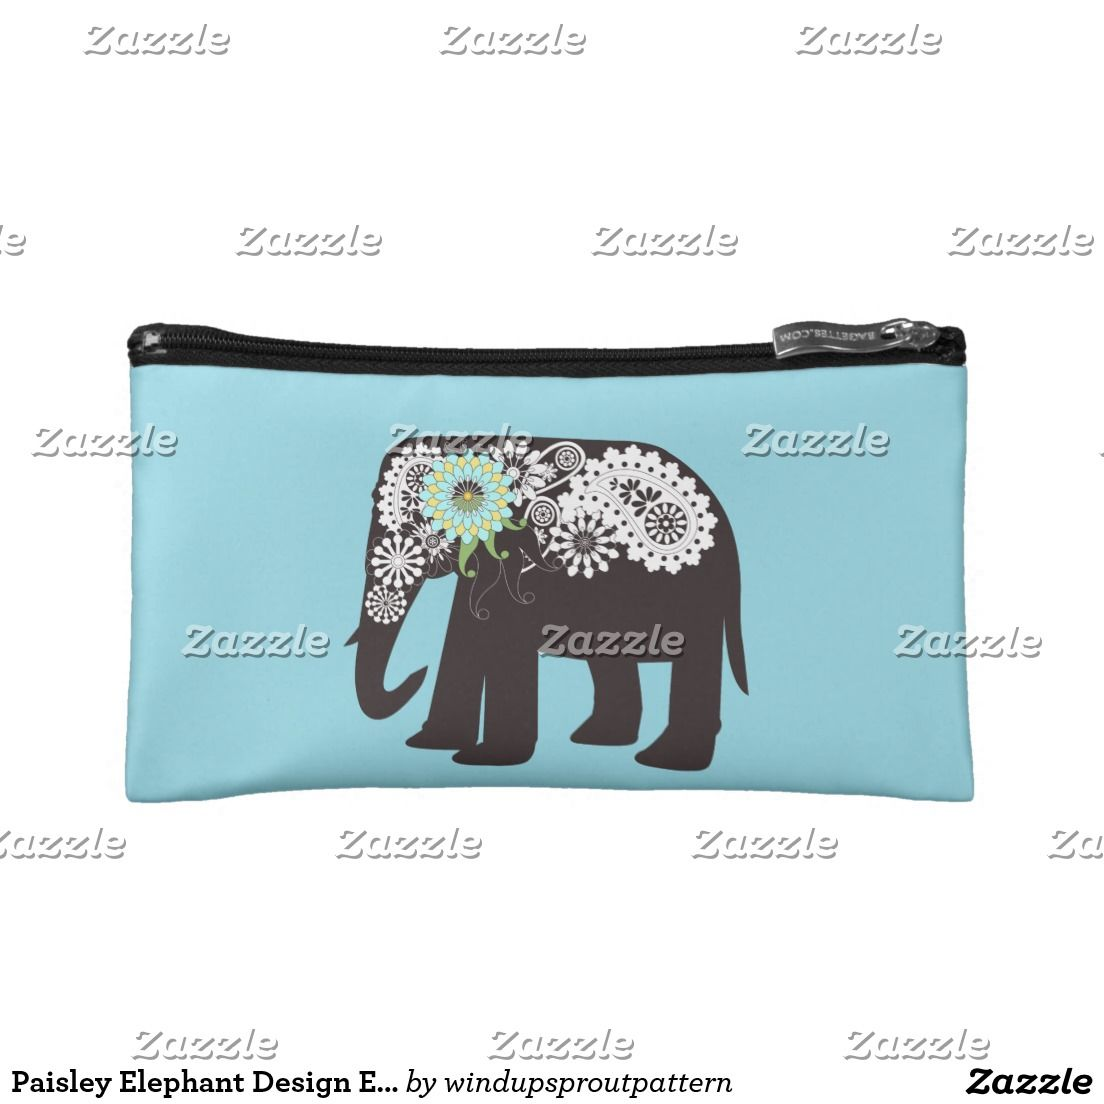 Paisley Elephant Design Elegant Cute Light Blue Makeup Bag by Wind up Sprout.